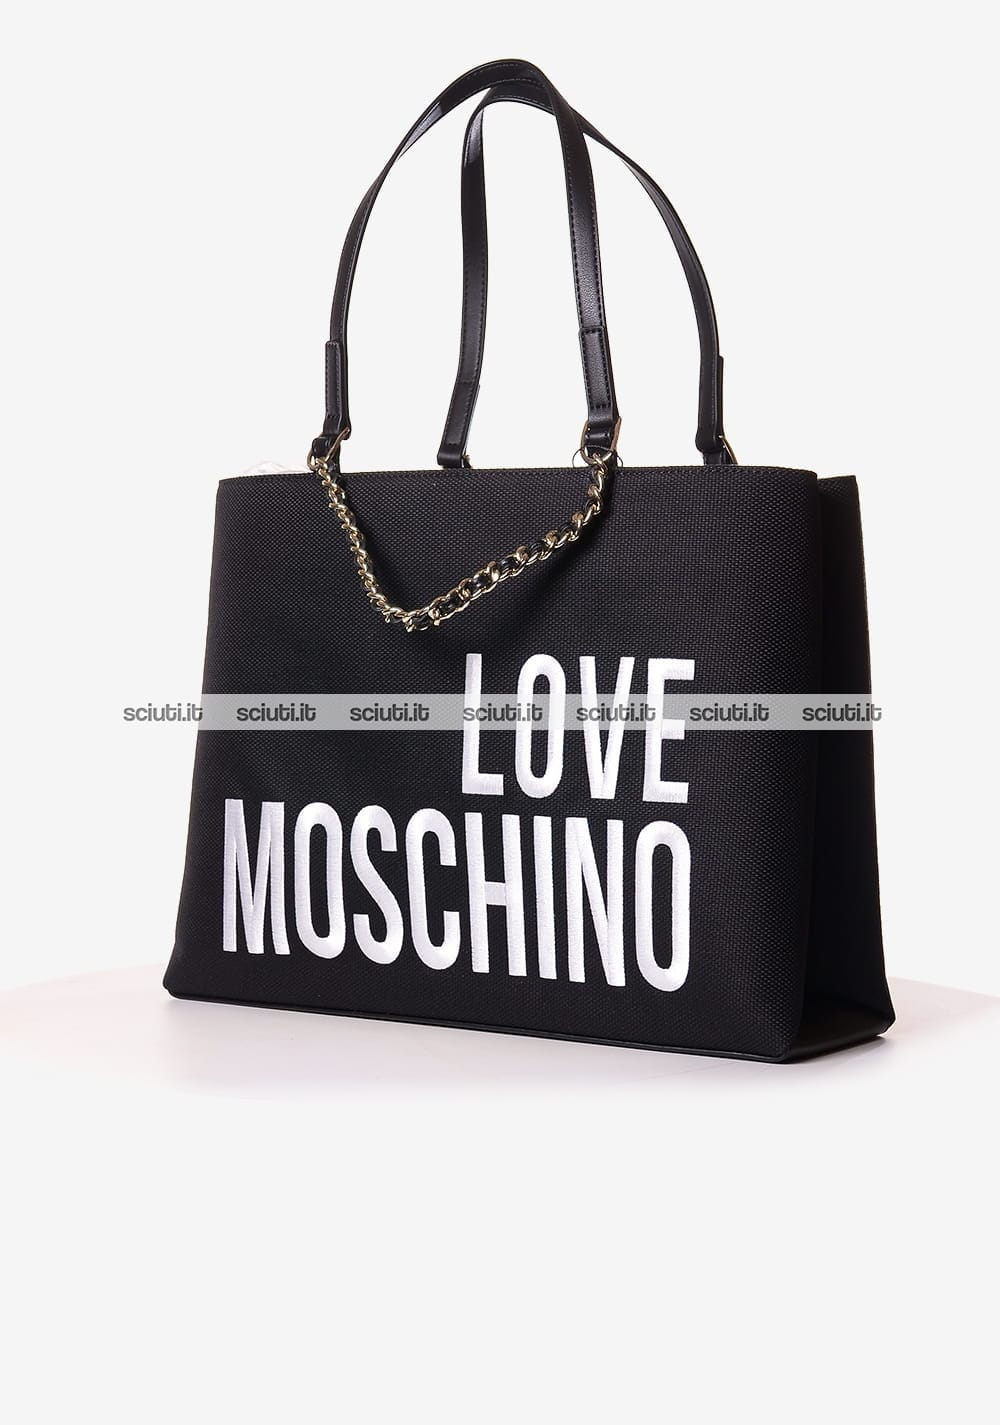 8390671ae5 Borsa a spalla Love Moschino donna in canvas logo nero | Sciuti.it